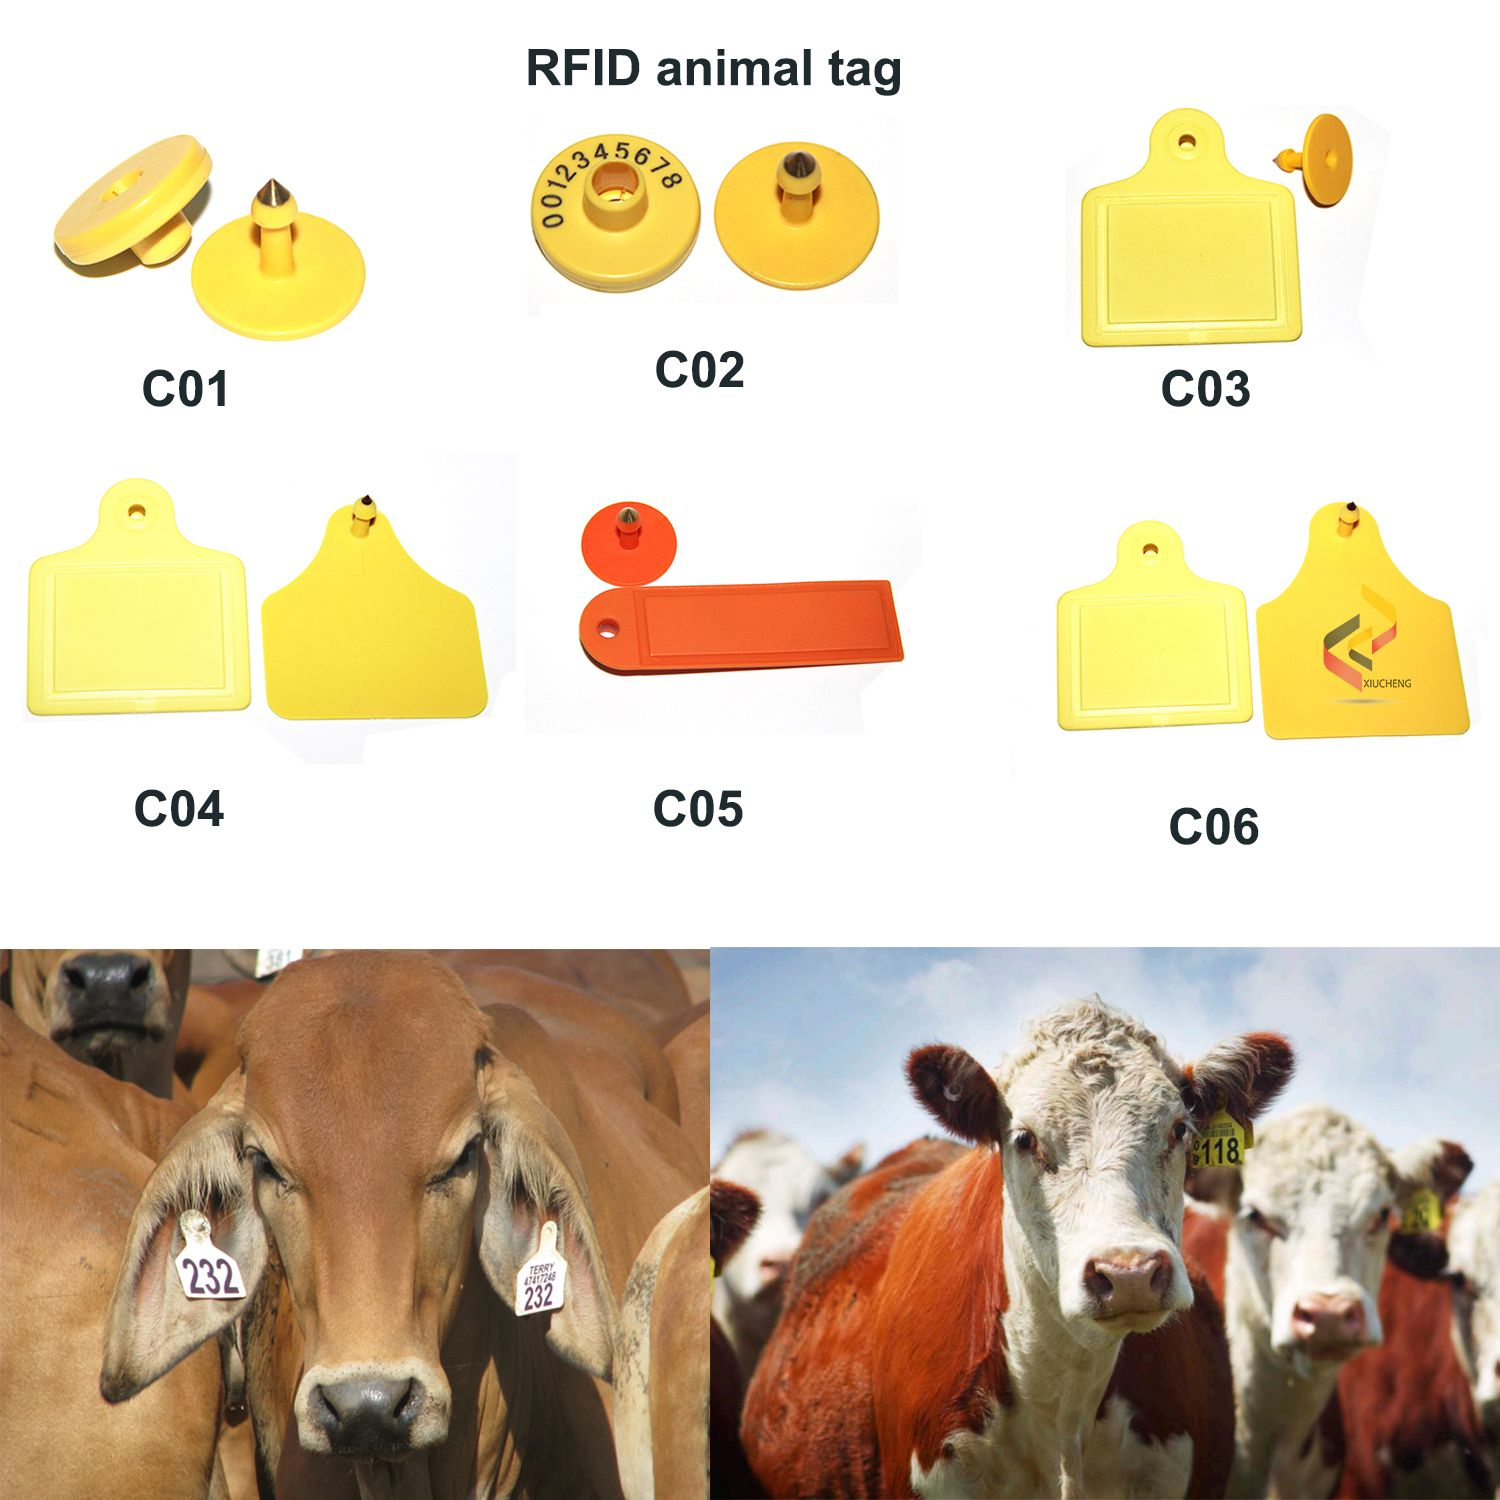 Rfid Animal Tag Is Widely Used For Animal Tracking Especially In The Farm Kindly Contact Us About More Details Email Jane Siliconeplast Rfid Rfid Tag Nfc See more ideas about plastic animals, plastic animal crafts, animal party. rfid animal tag is widely used for